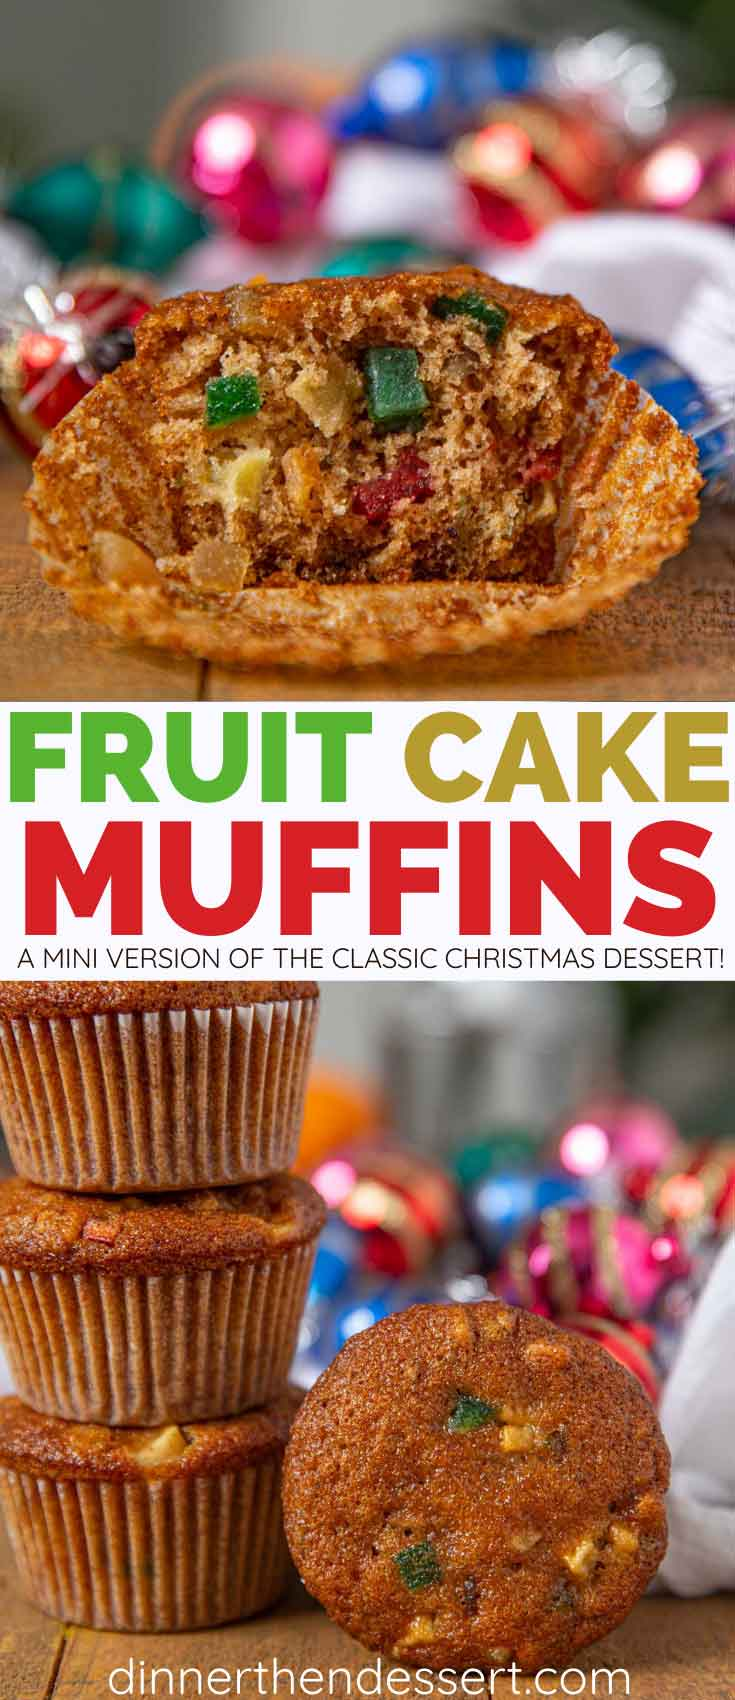 Fruit Cake Muffins Collage